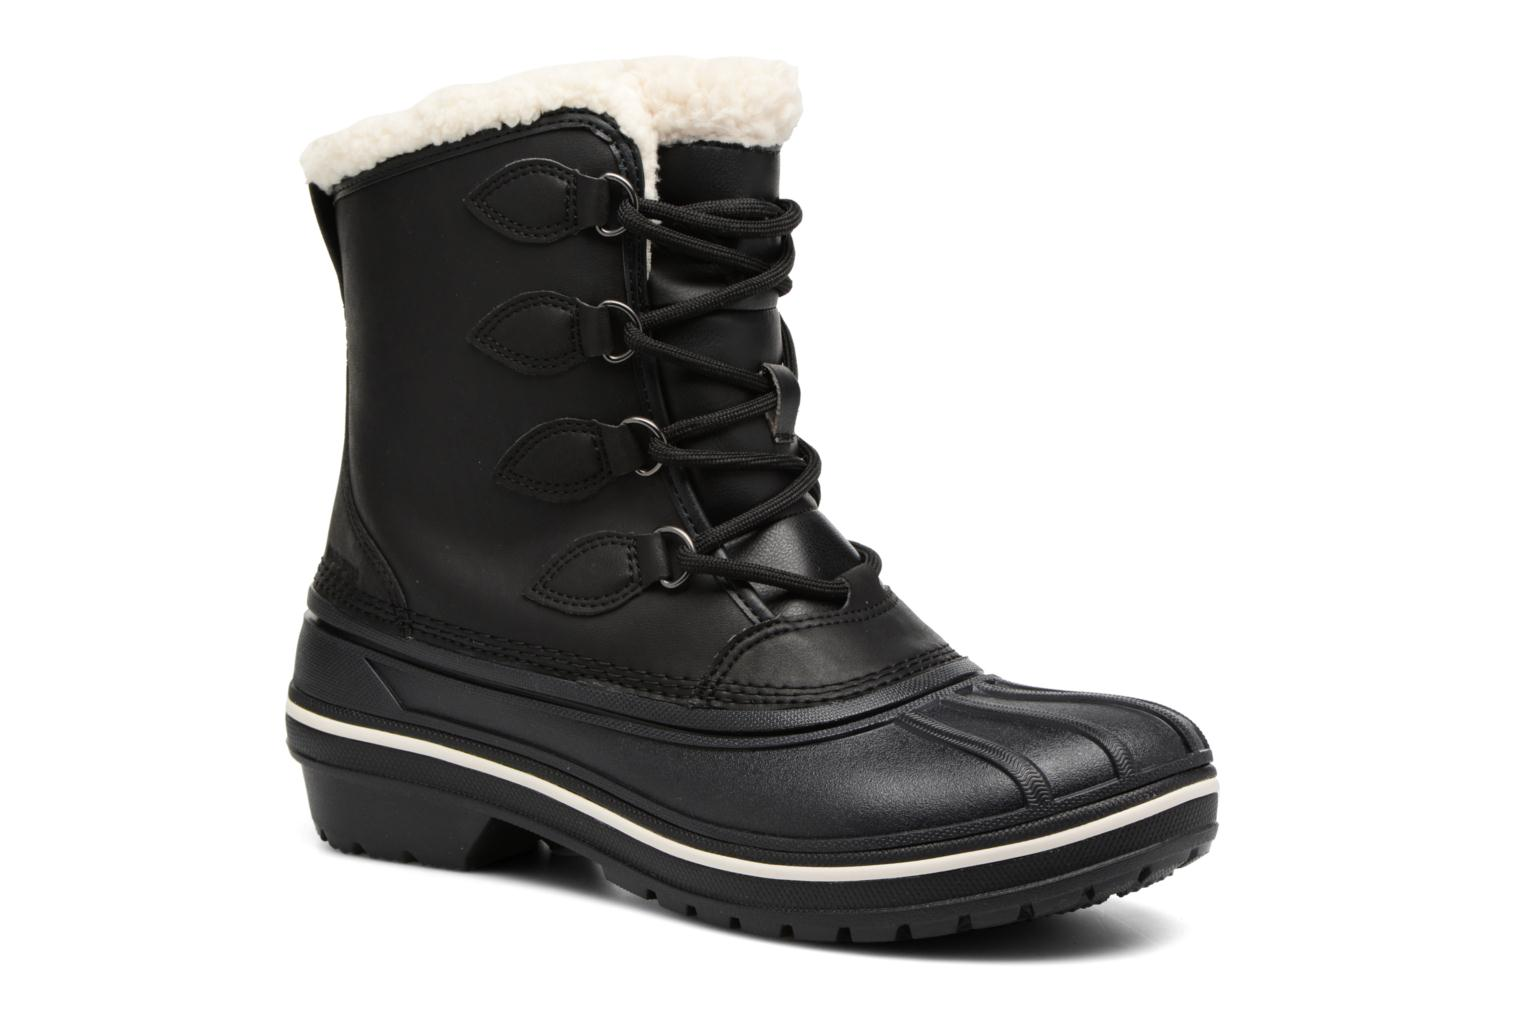 AllCast II Boot W by CrocsRebajas - 10%